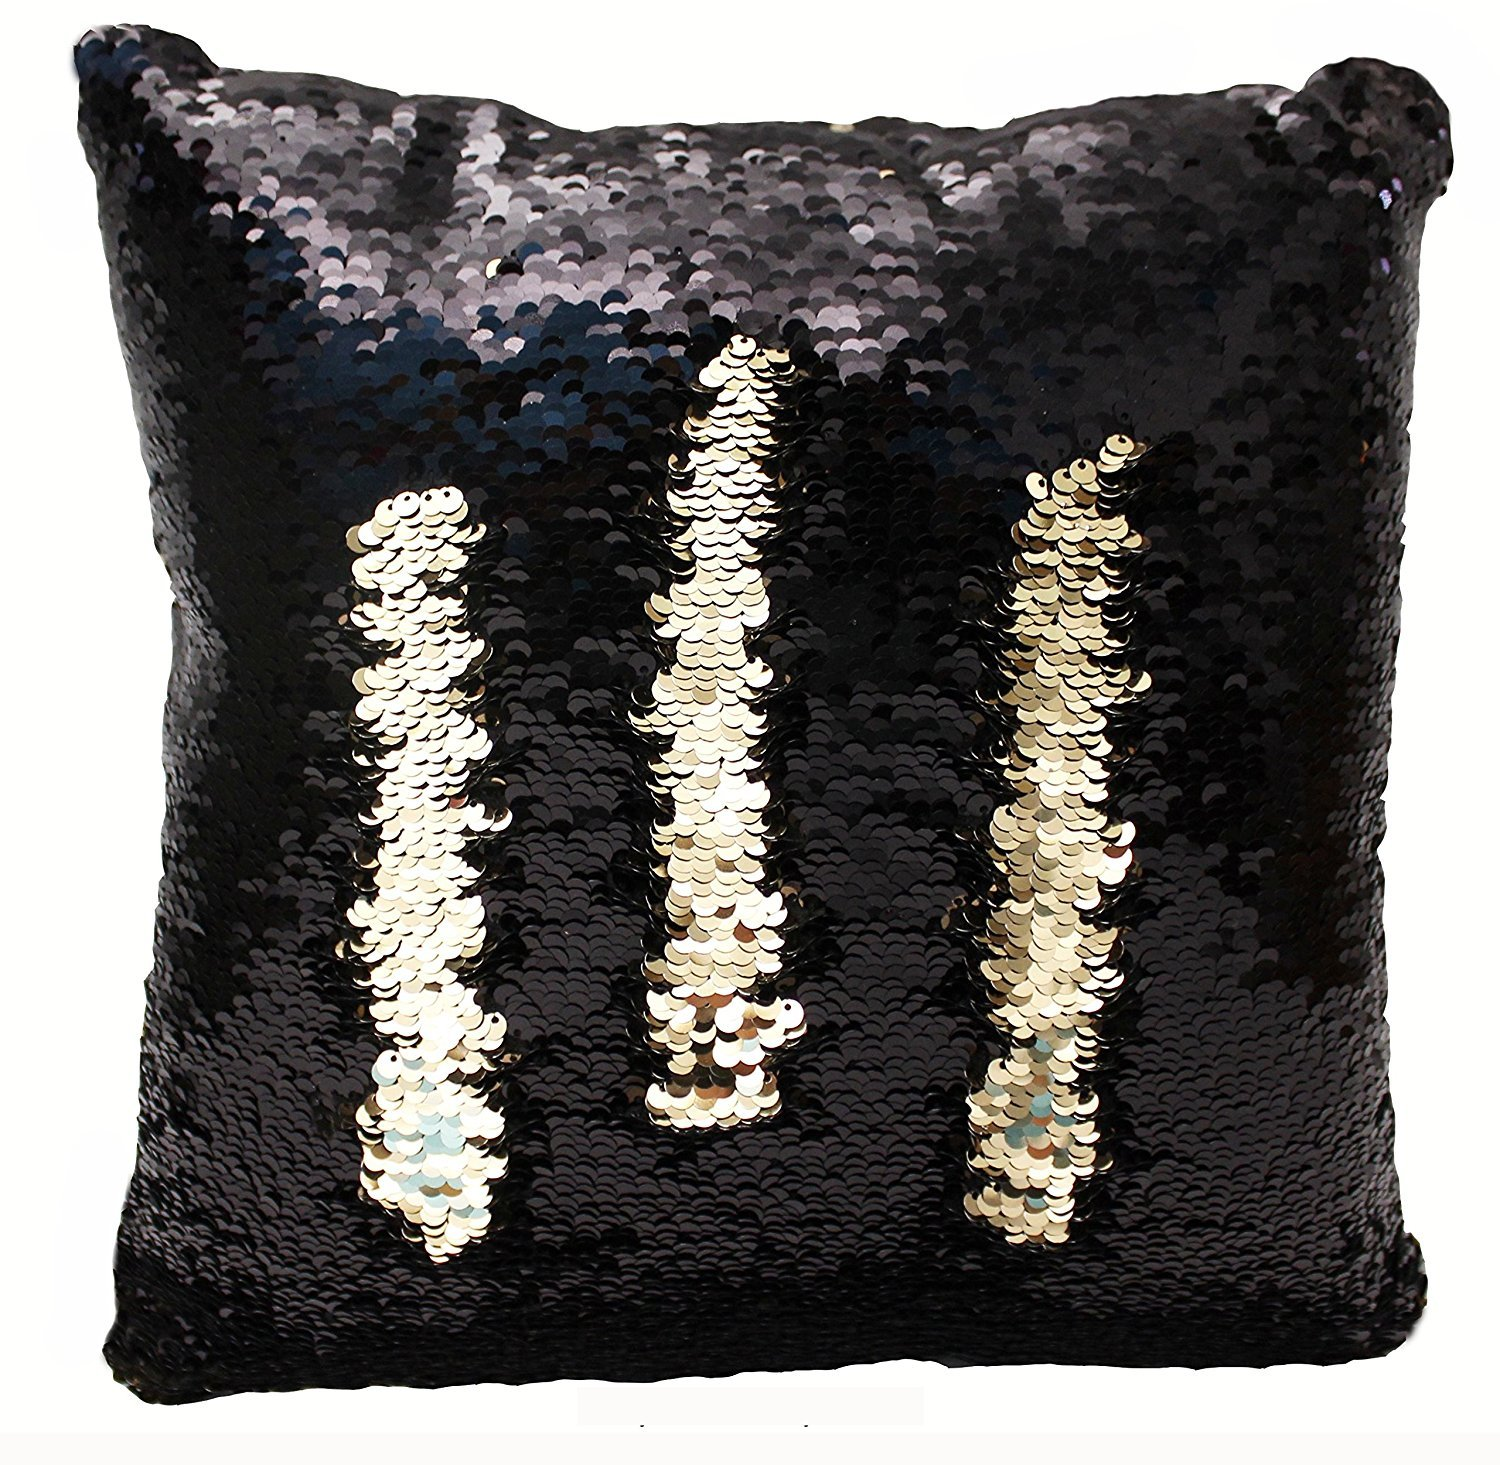 (Black/Gold) Mermaid Sequin Reversible Pillow (Black/Gold) B01I28Q9EC ブラック/ゴールド ブラック/ゴールド